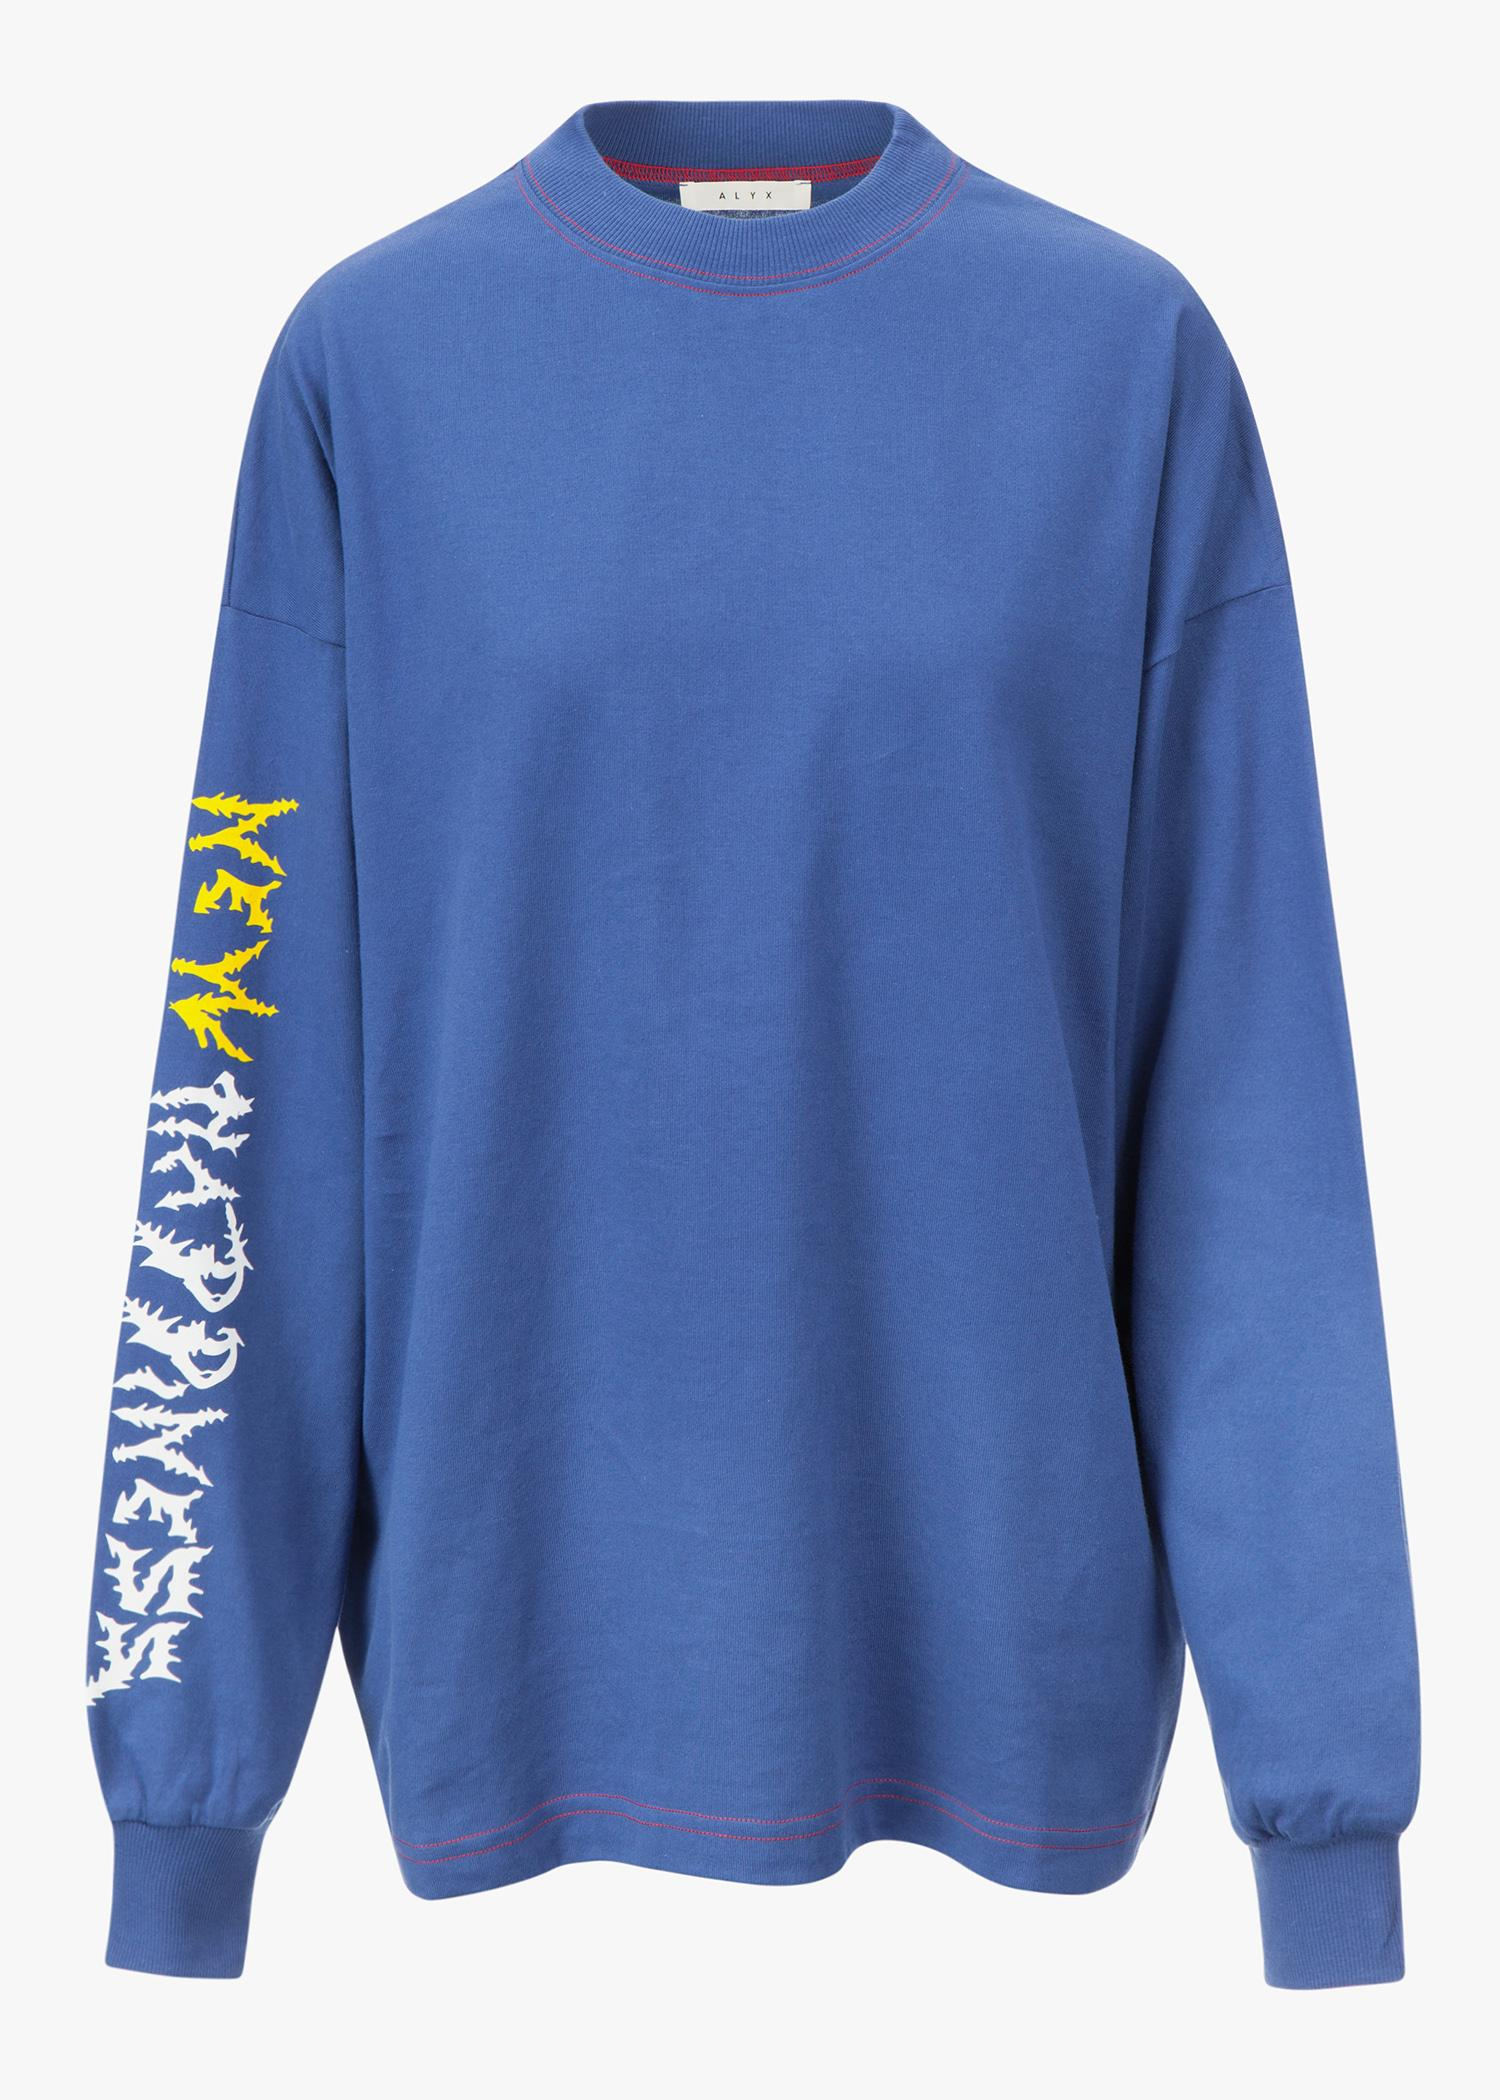 Alyx New Happiness L/S Tee In Bluette